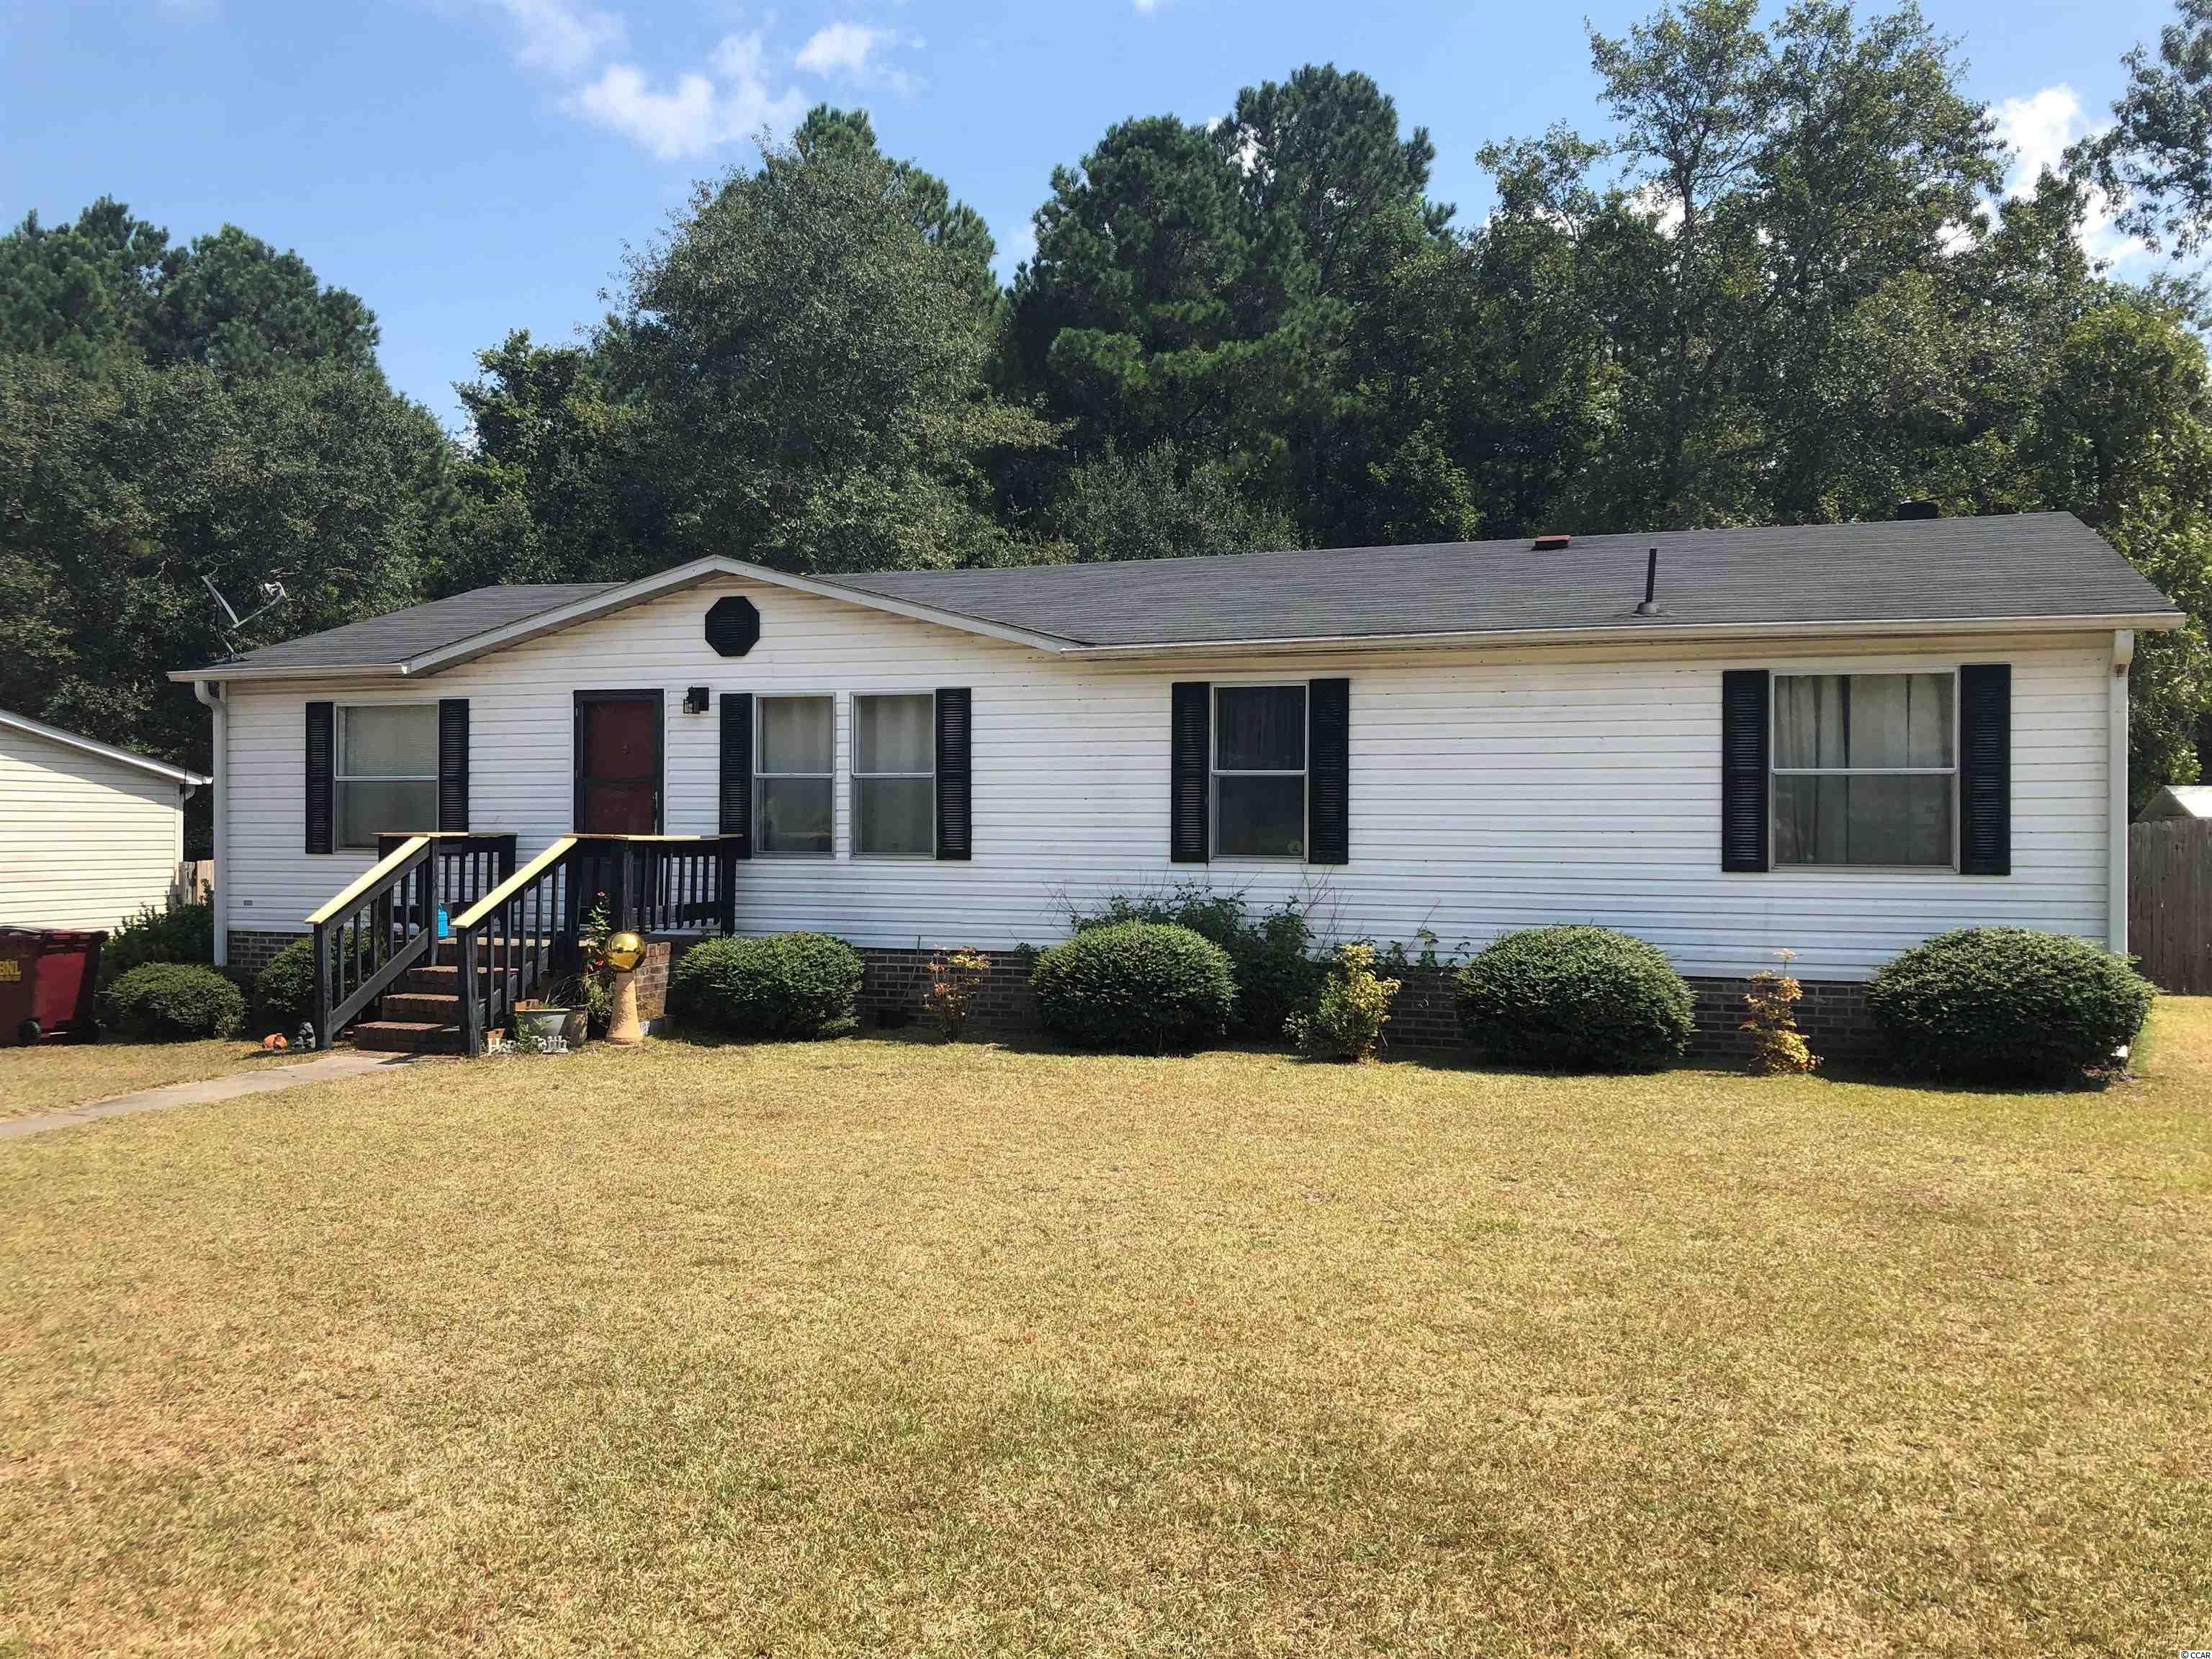 This well maintained 3 Bedroom, 2 bath home is is located on a large lot with a fenced-in back yard. Great for outdoor activities or gardening. The Bridgewater Community has very low HOA fees and is located only miles from downtown Conway with easy access to Myrtle Beach.